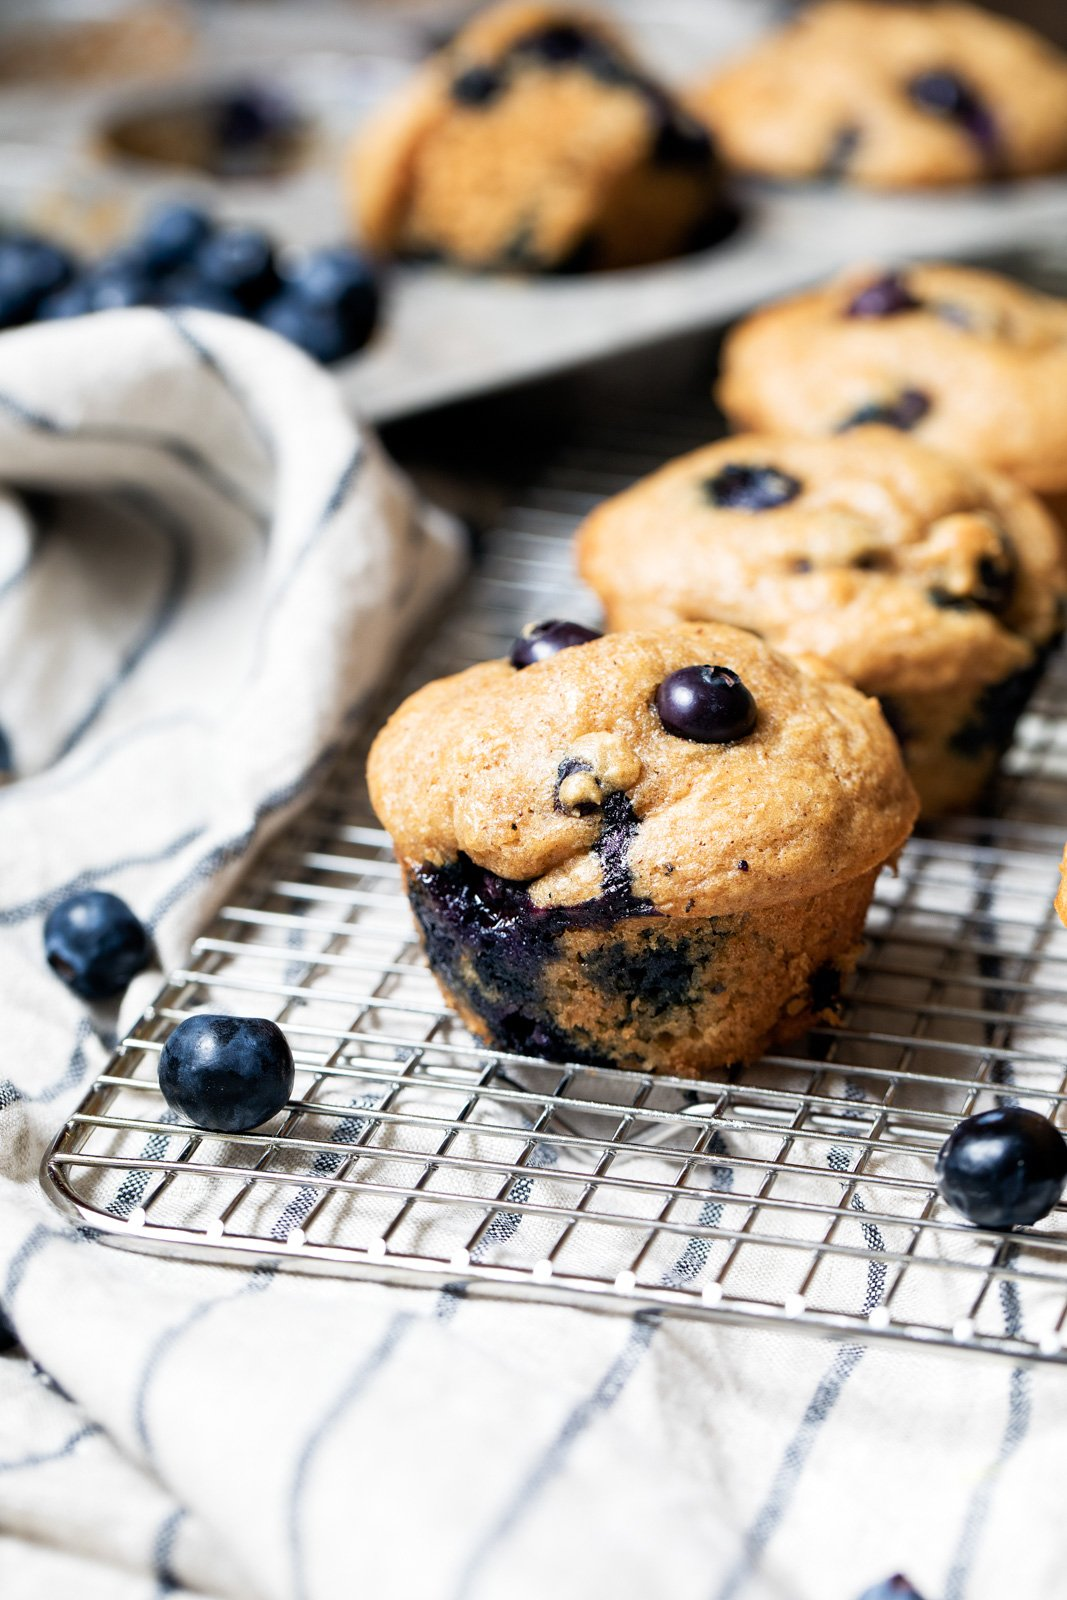 Healthy Blueberry Greek Yogurt Muffins made with whole wheat flour, greek yogurt, naturally sweetened with maple syrup and just a touch of heart healthy avocado oil (or coconut oil!).